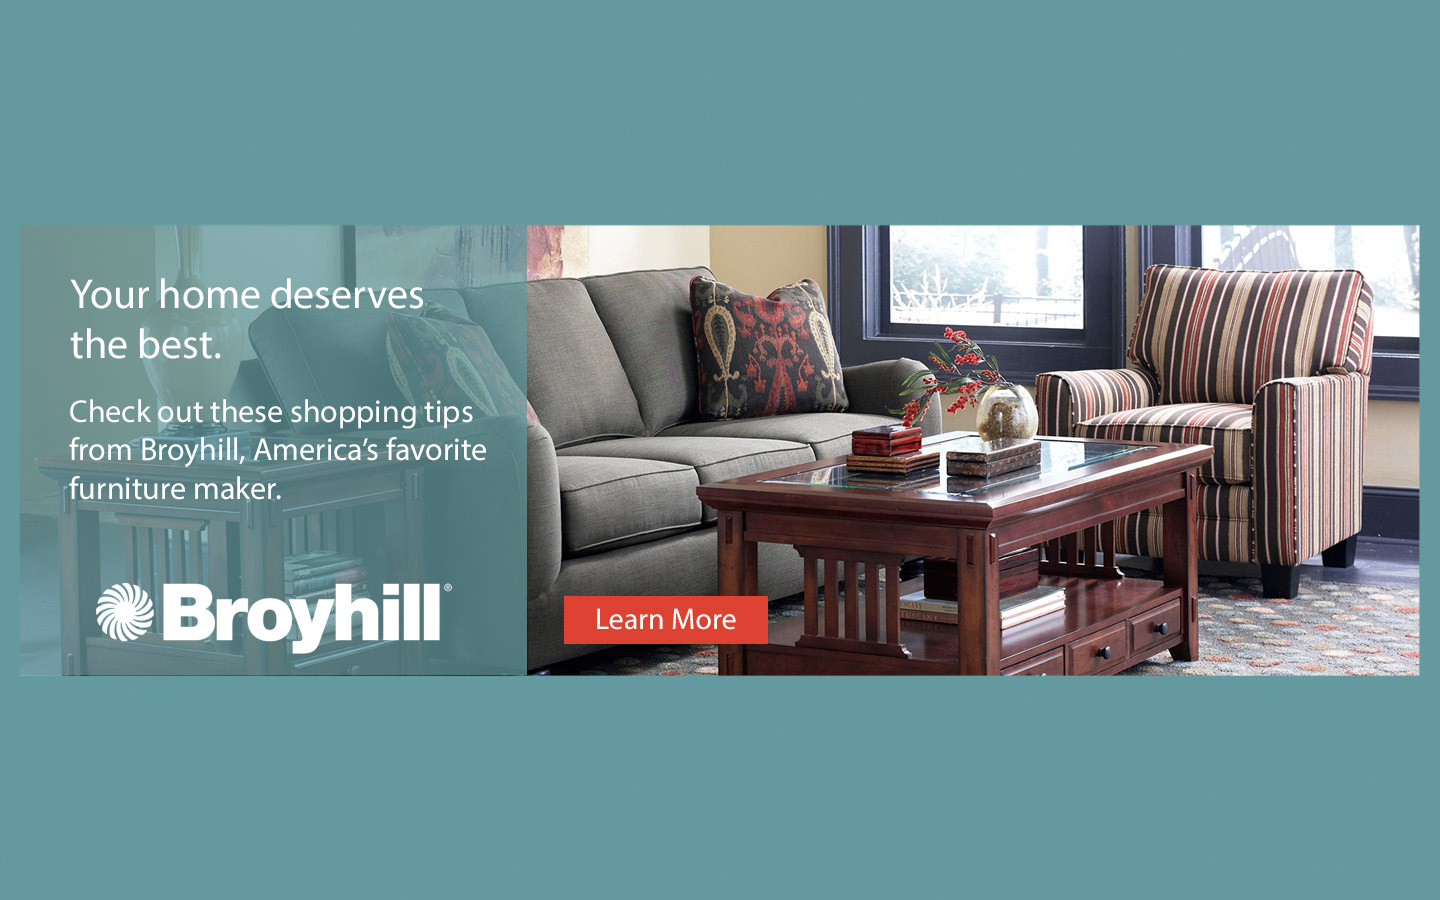 Broyhill Wood And Upholstery Shopping Tips Q2 2017